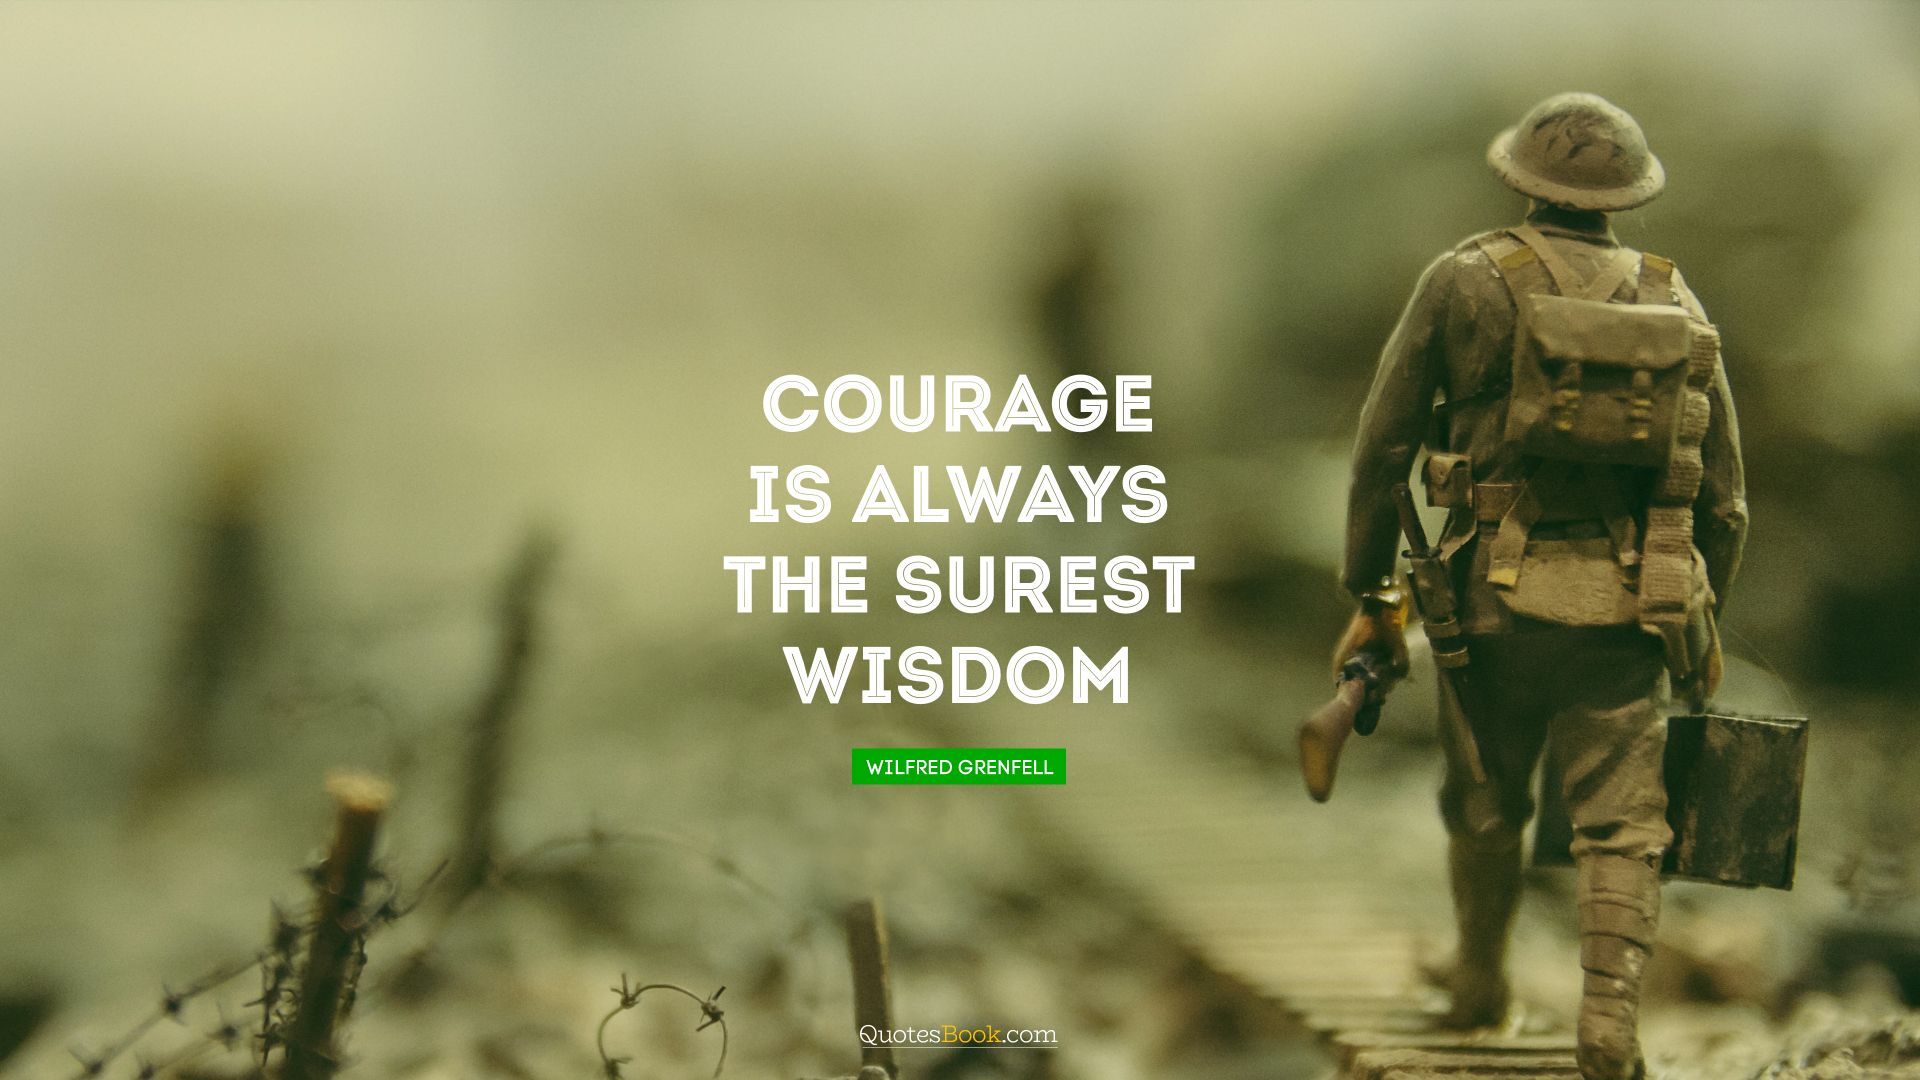 Courage is always the surest wisdom. - Quote by Wilfred Grenfell